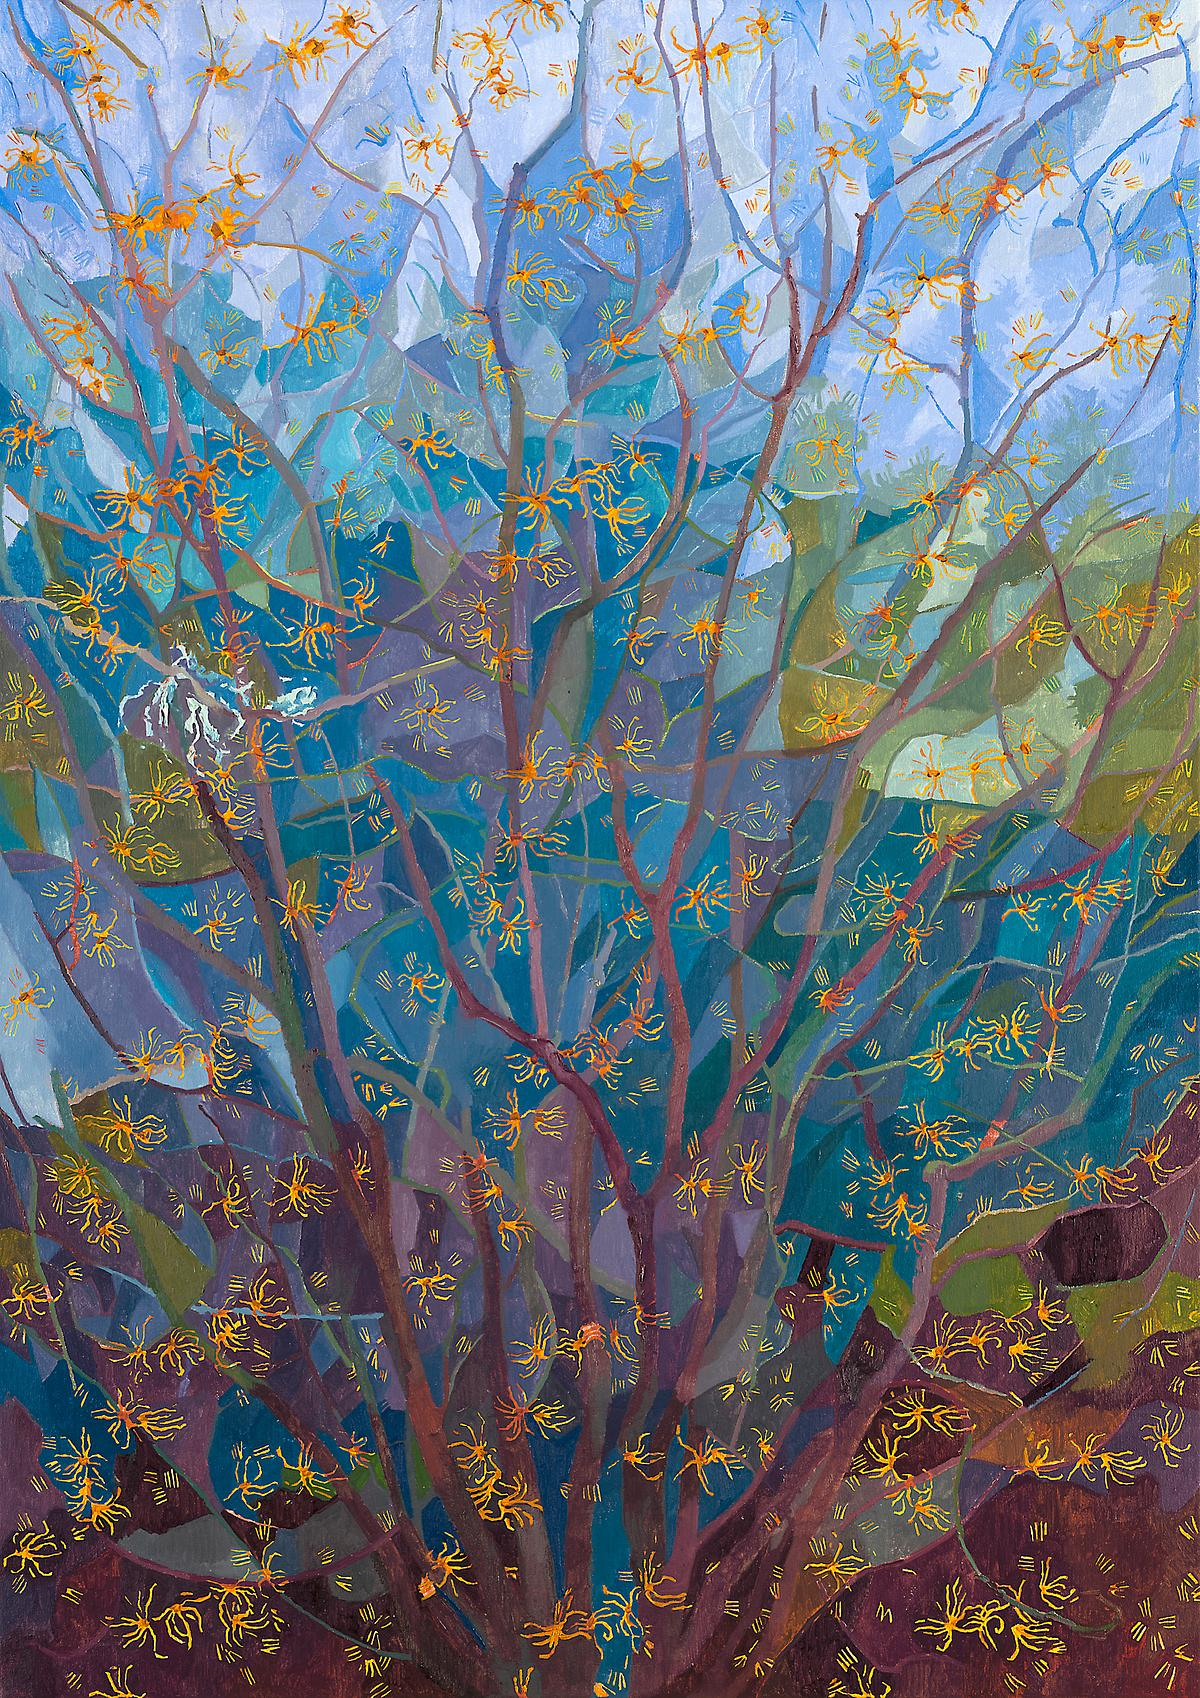 Hamamelis in flower, L Glover, 2015, SOLD